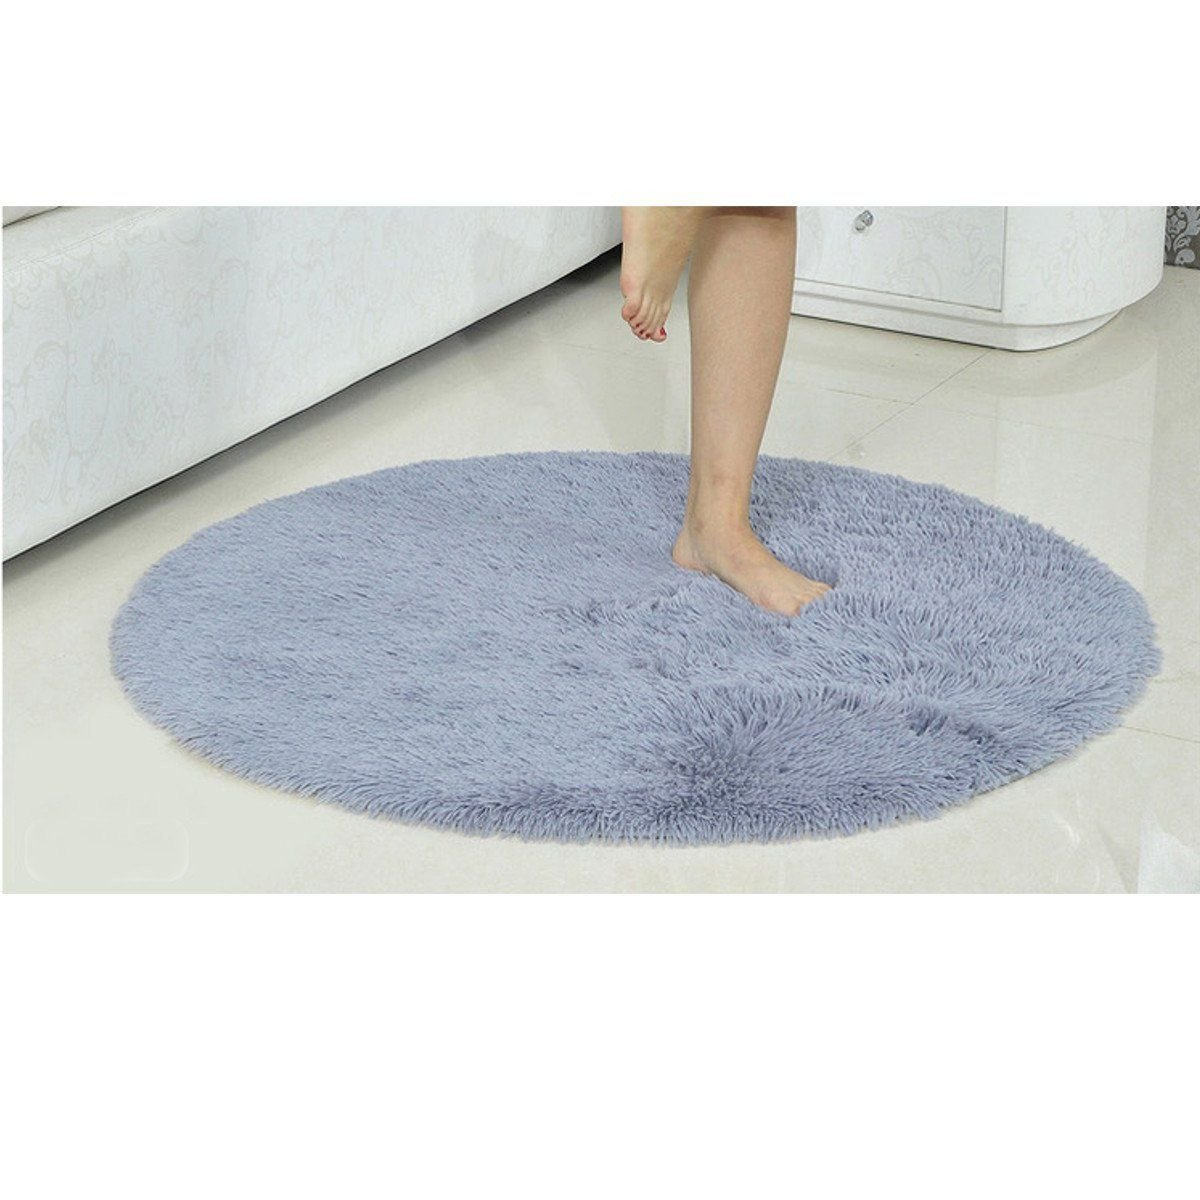 Rug On Carpet Bedroom Inspirational Round Fluffy Rugs Anti Skid Shaggy area Rug Room Home